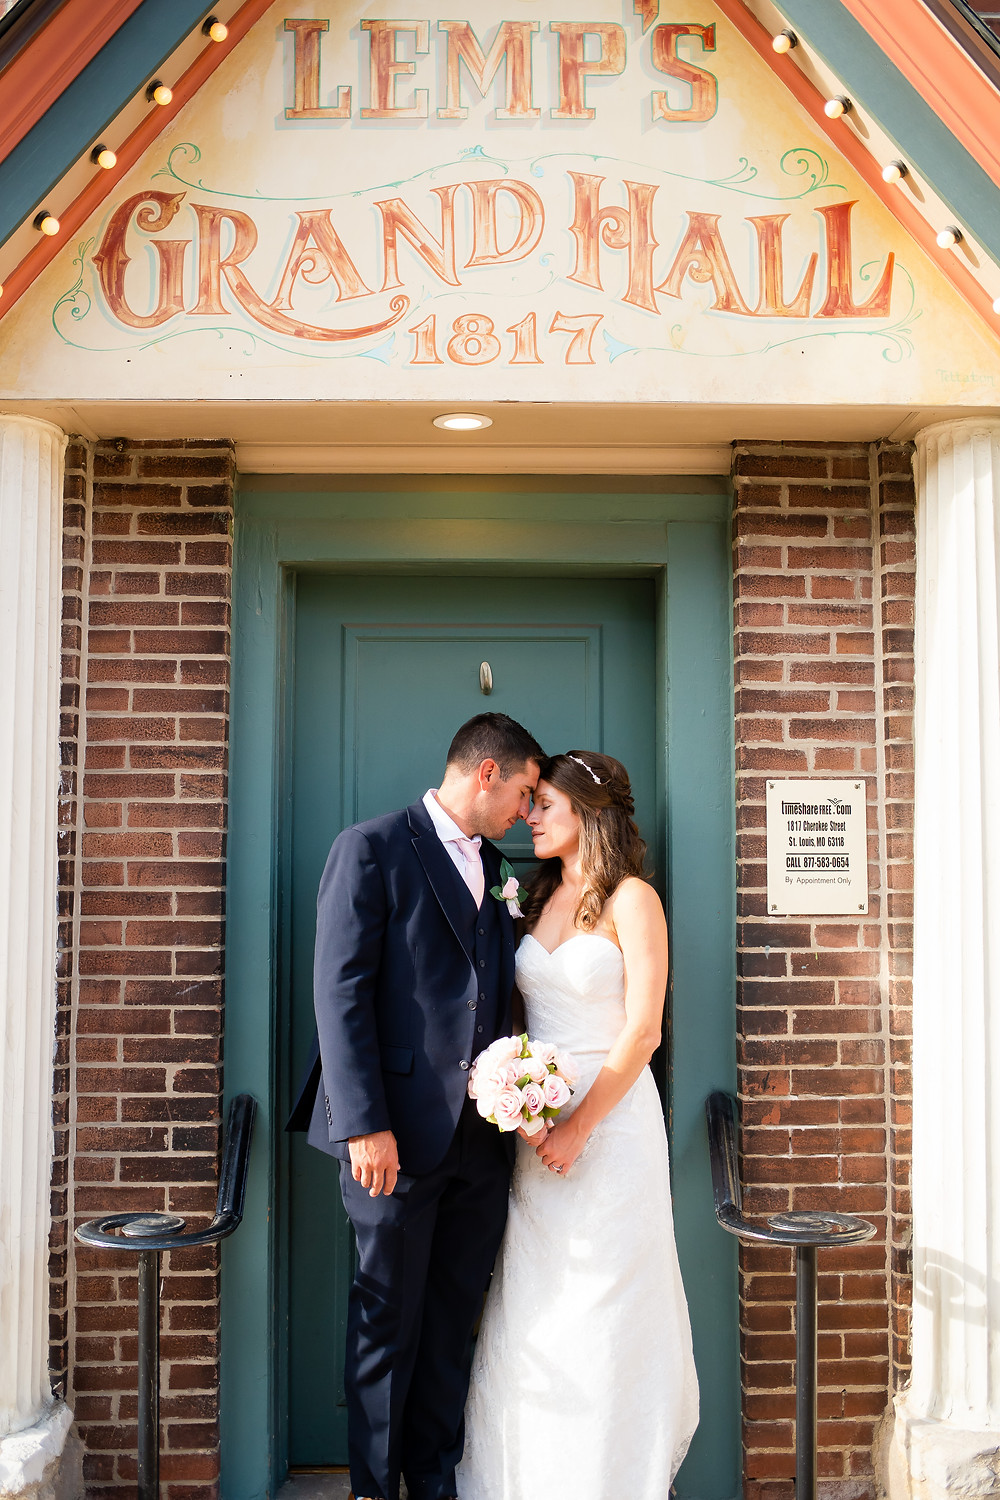 Bride and Groom portrait in front lamp's grand hall sign